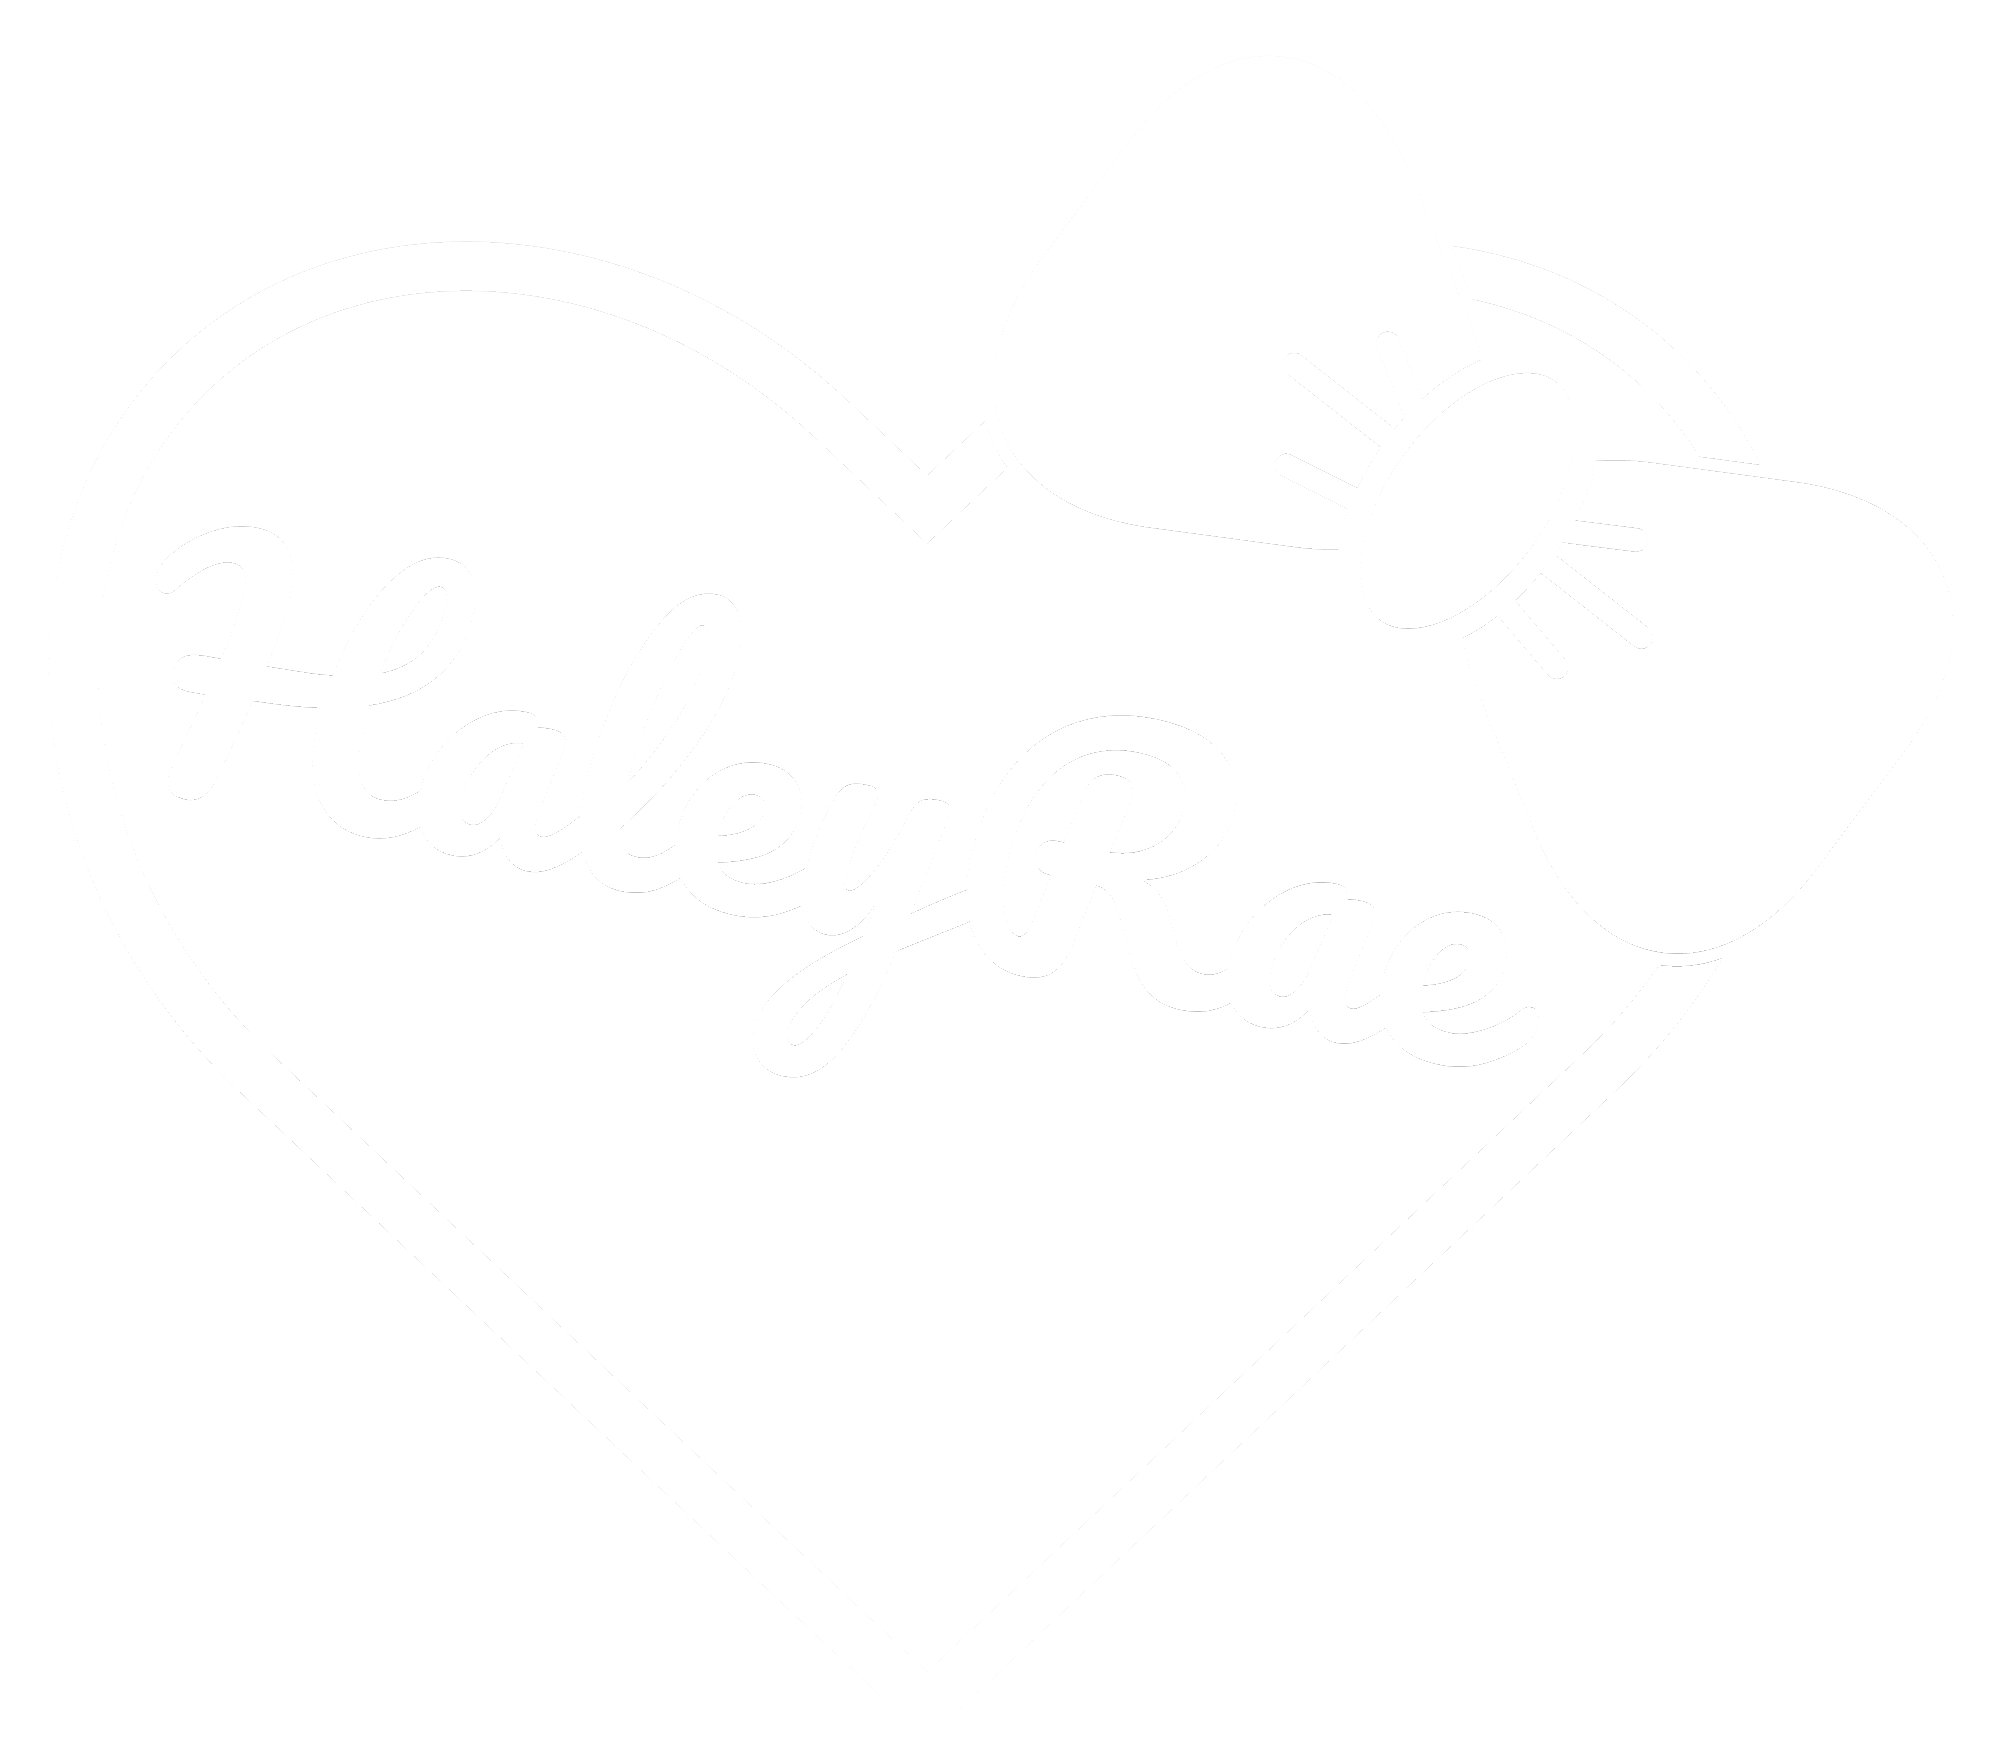 HaleyRae-Logo-Transparent-Bow.png